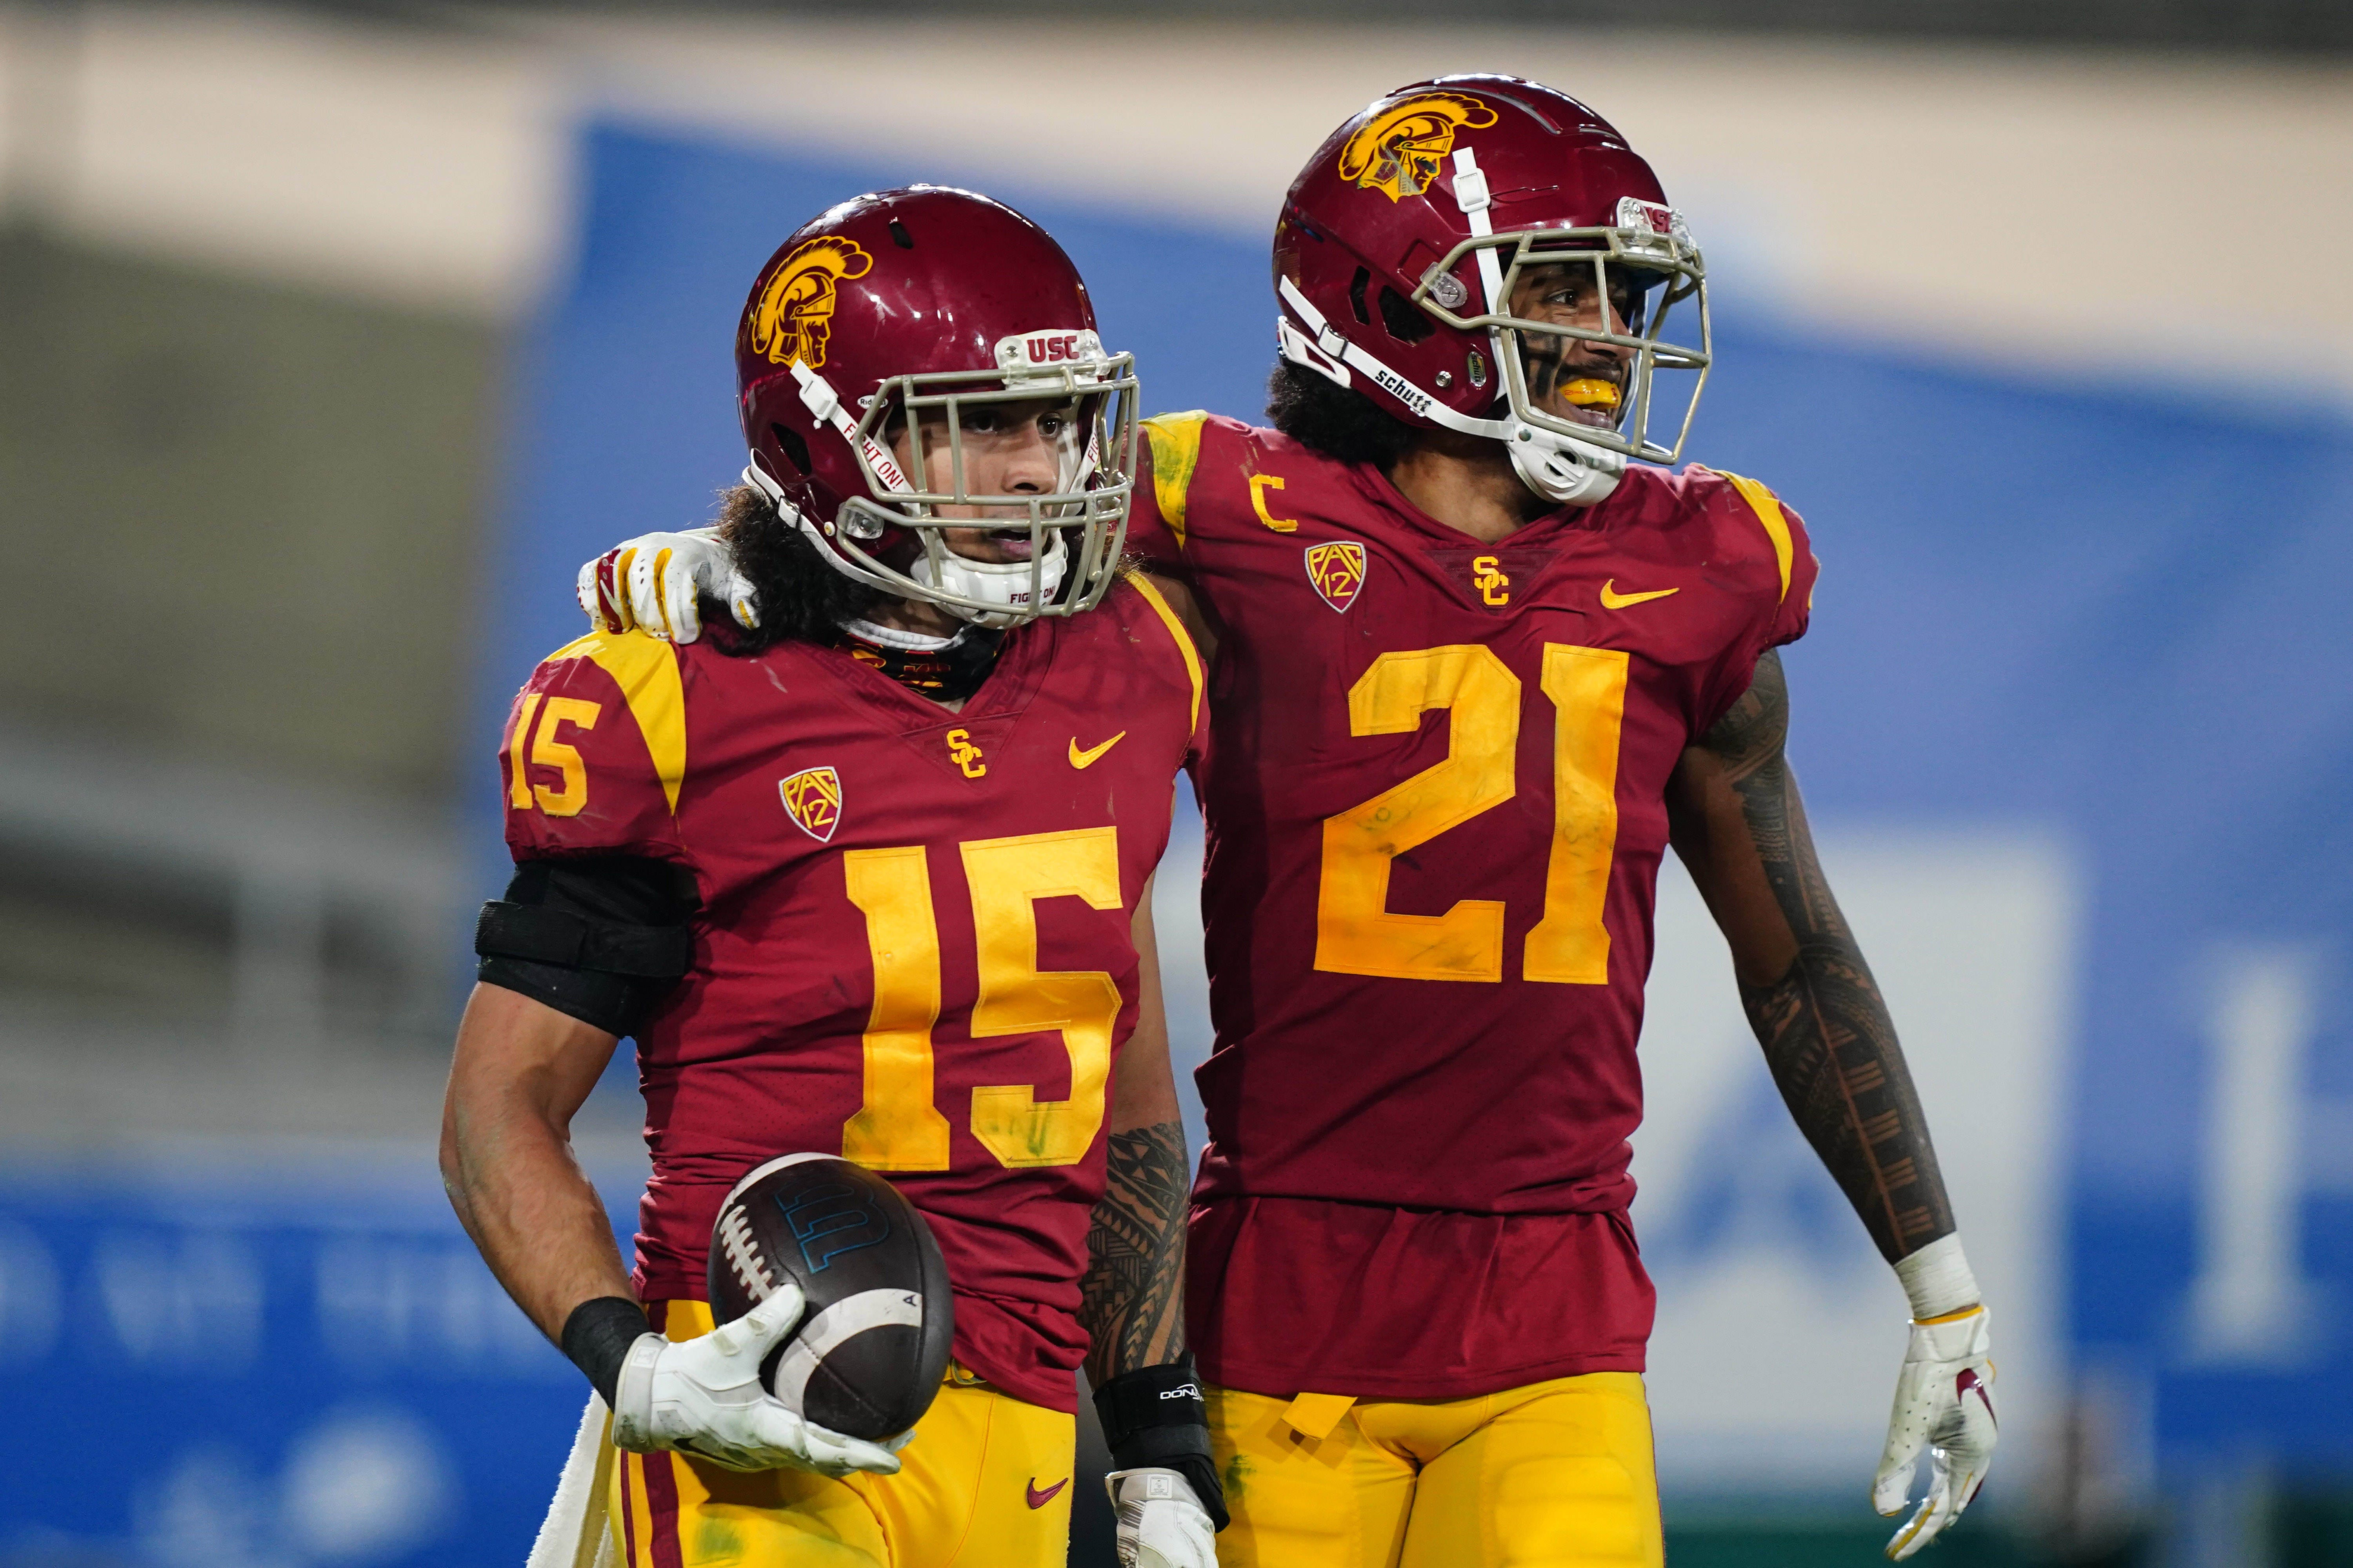 Pac-12 should crown USC champion, cancel conference title game